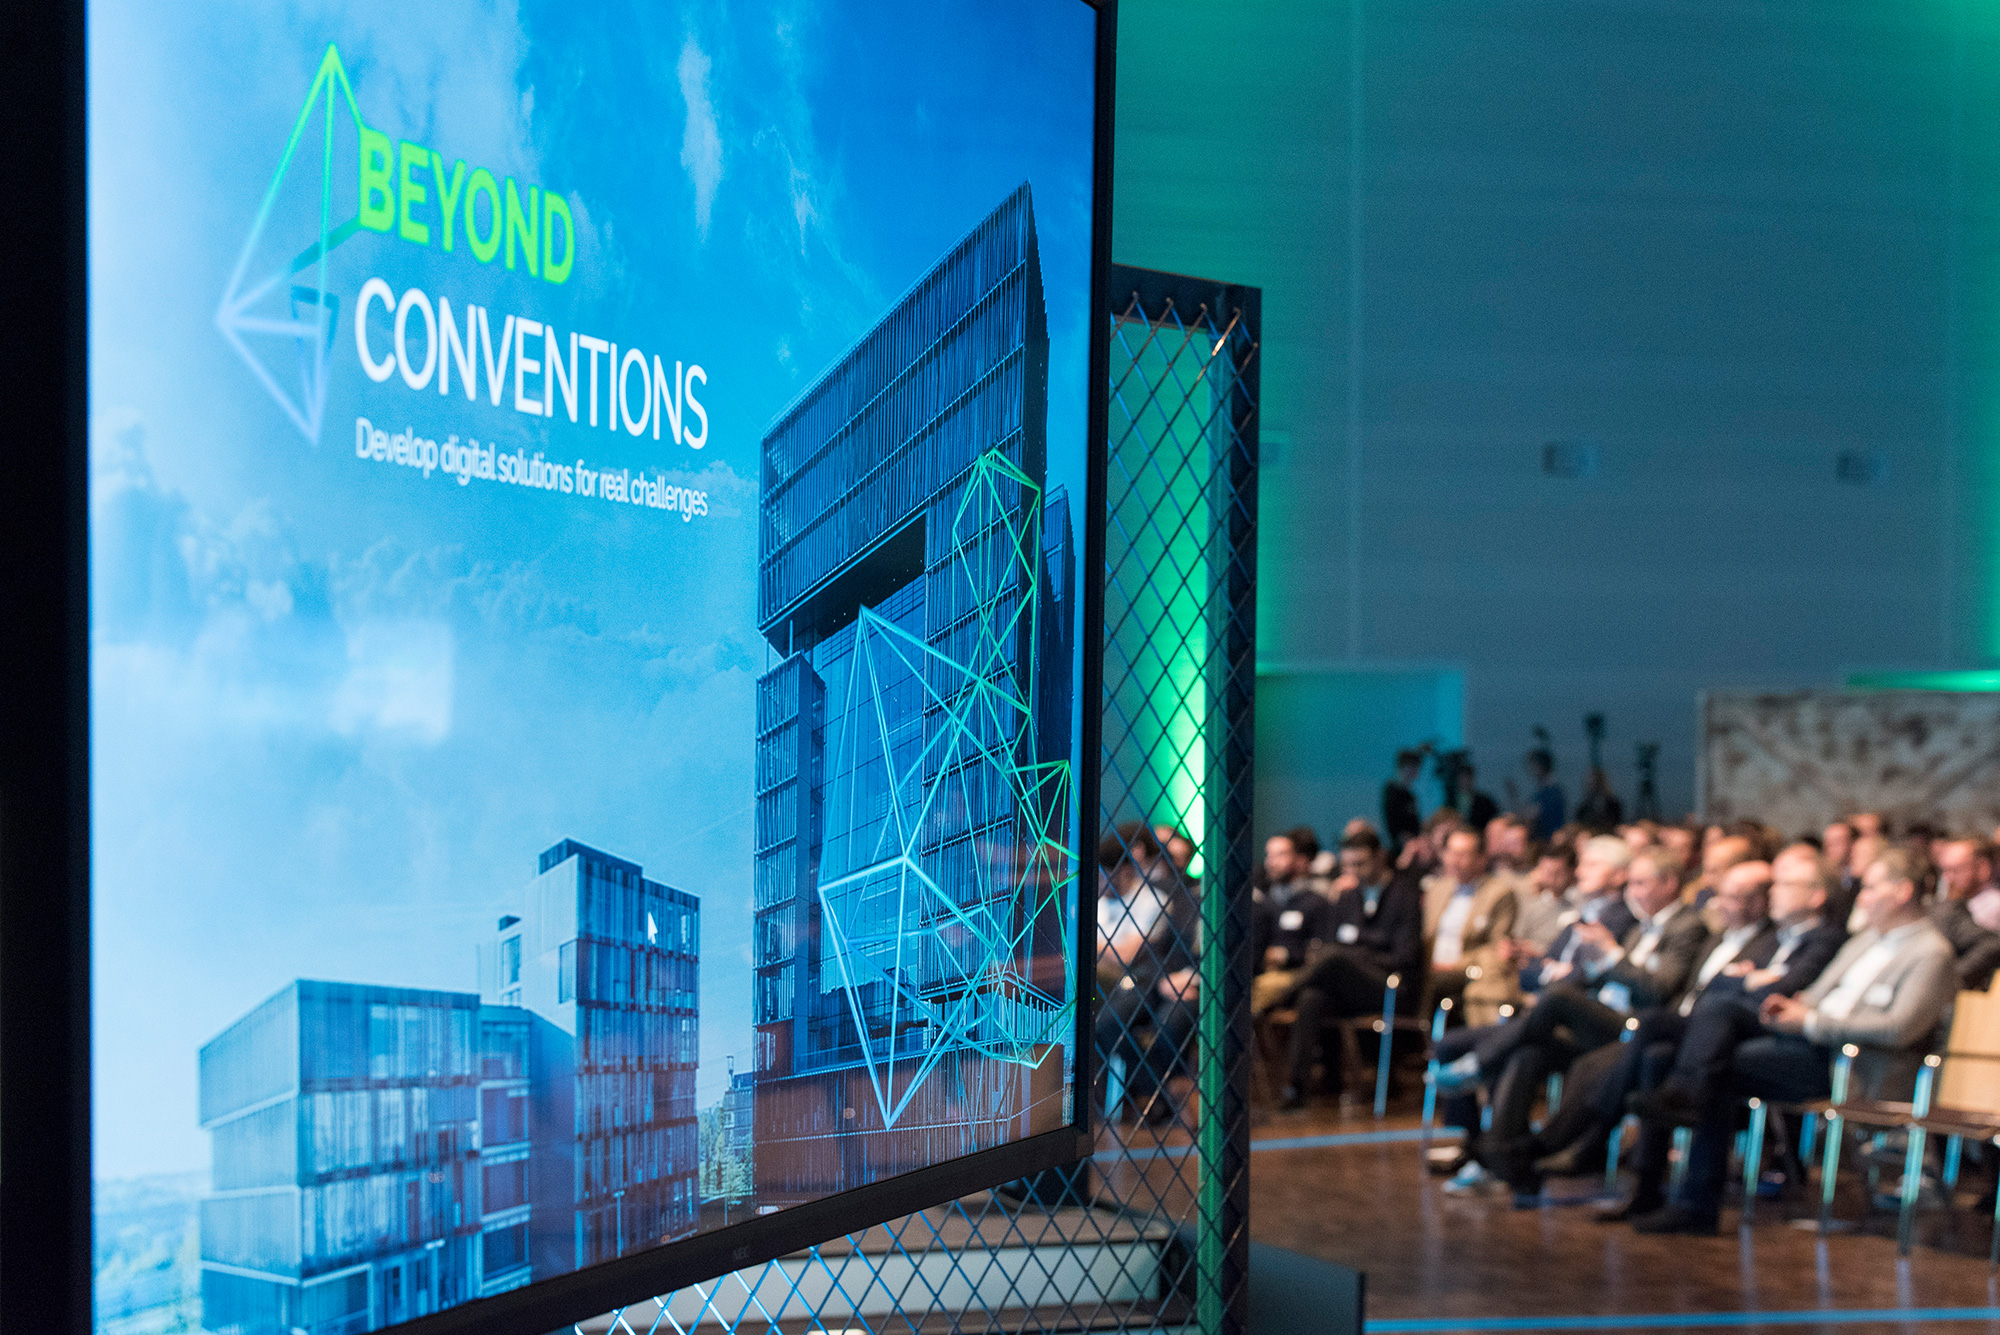 BeyondConventions: When start-ups and thyssenkrupp learn from each other